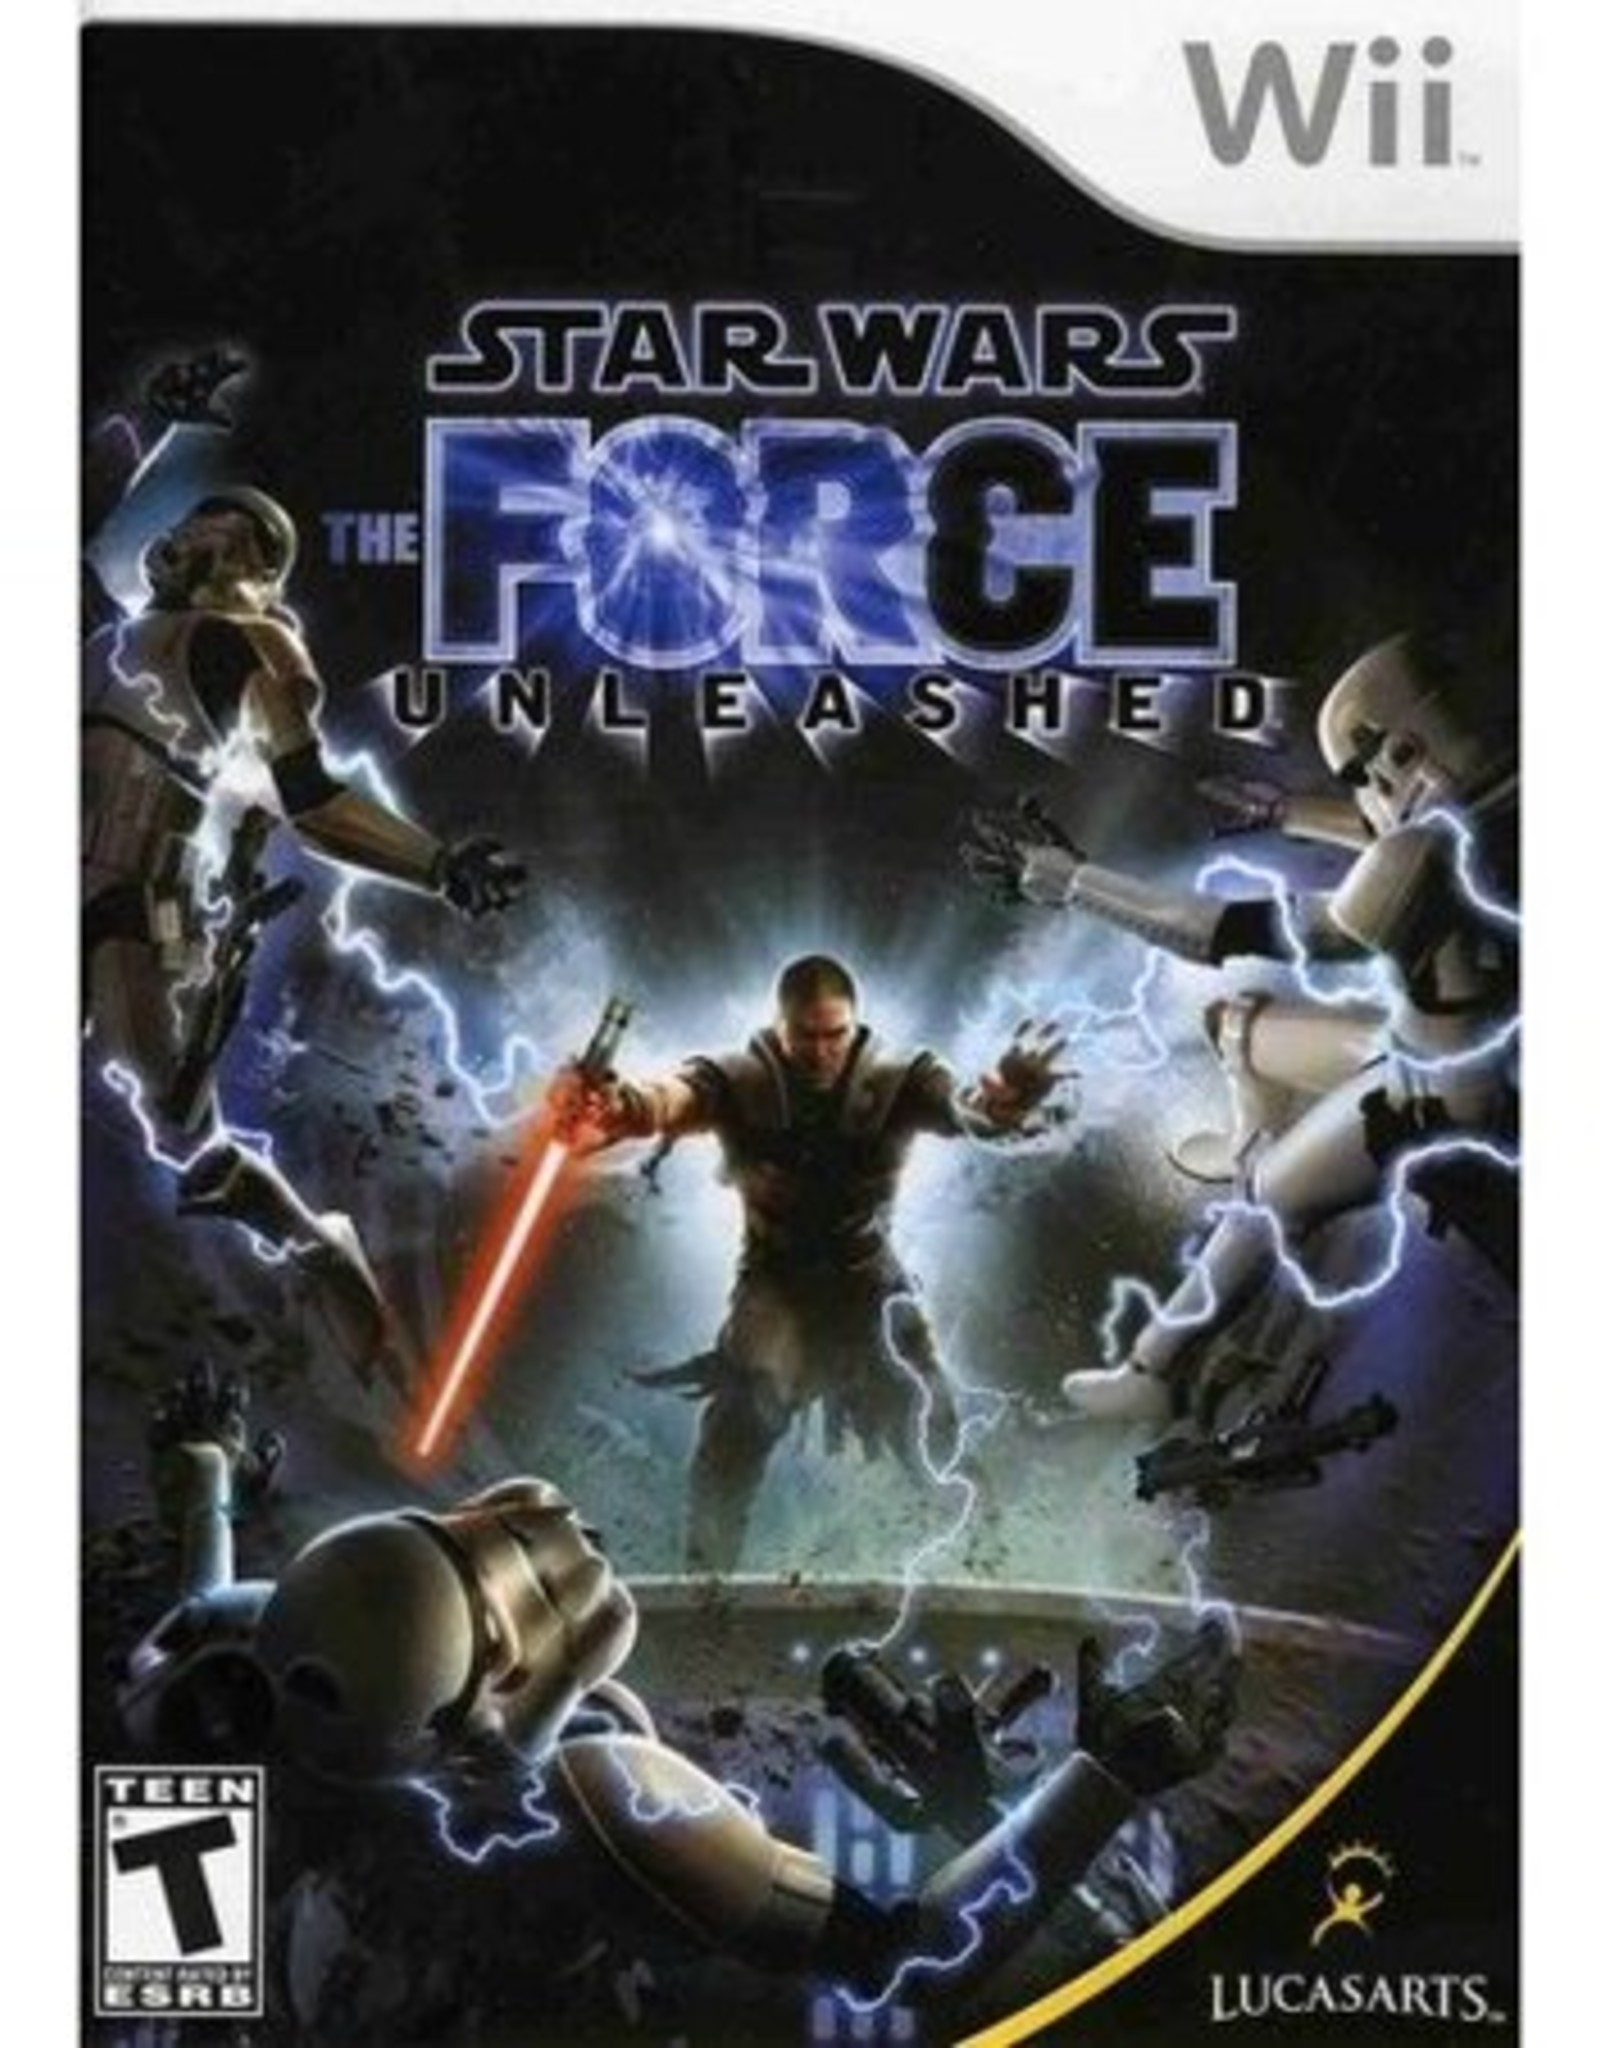 Star Wars The Force Unleashed - Wii PrePlayed